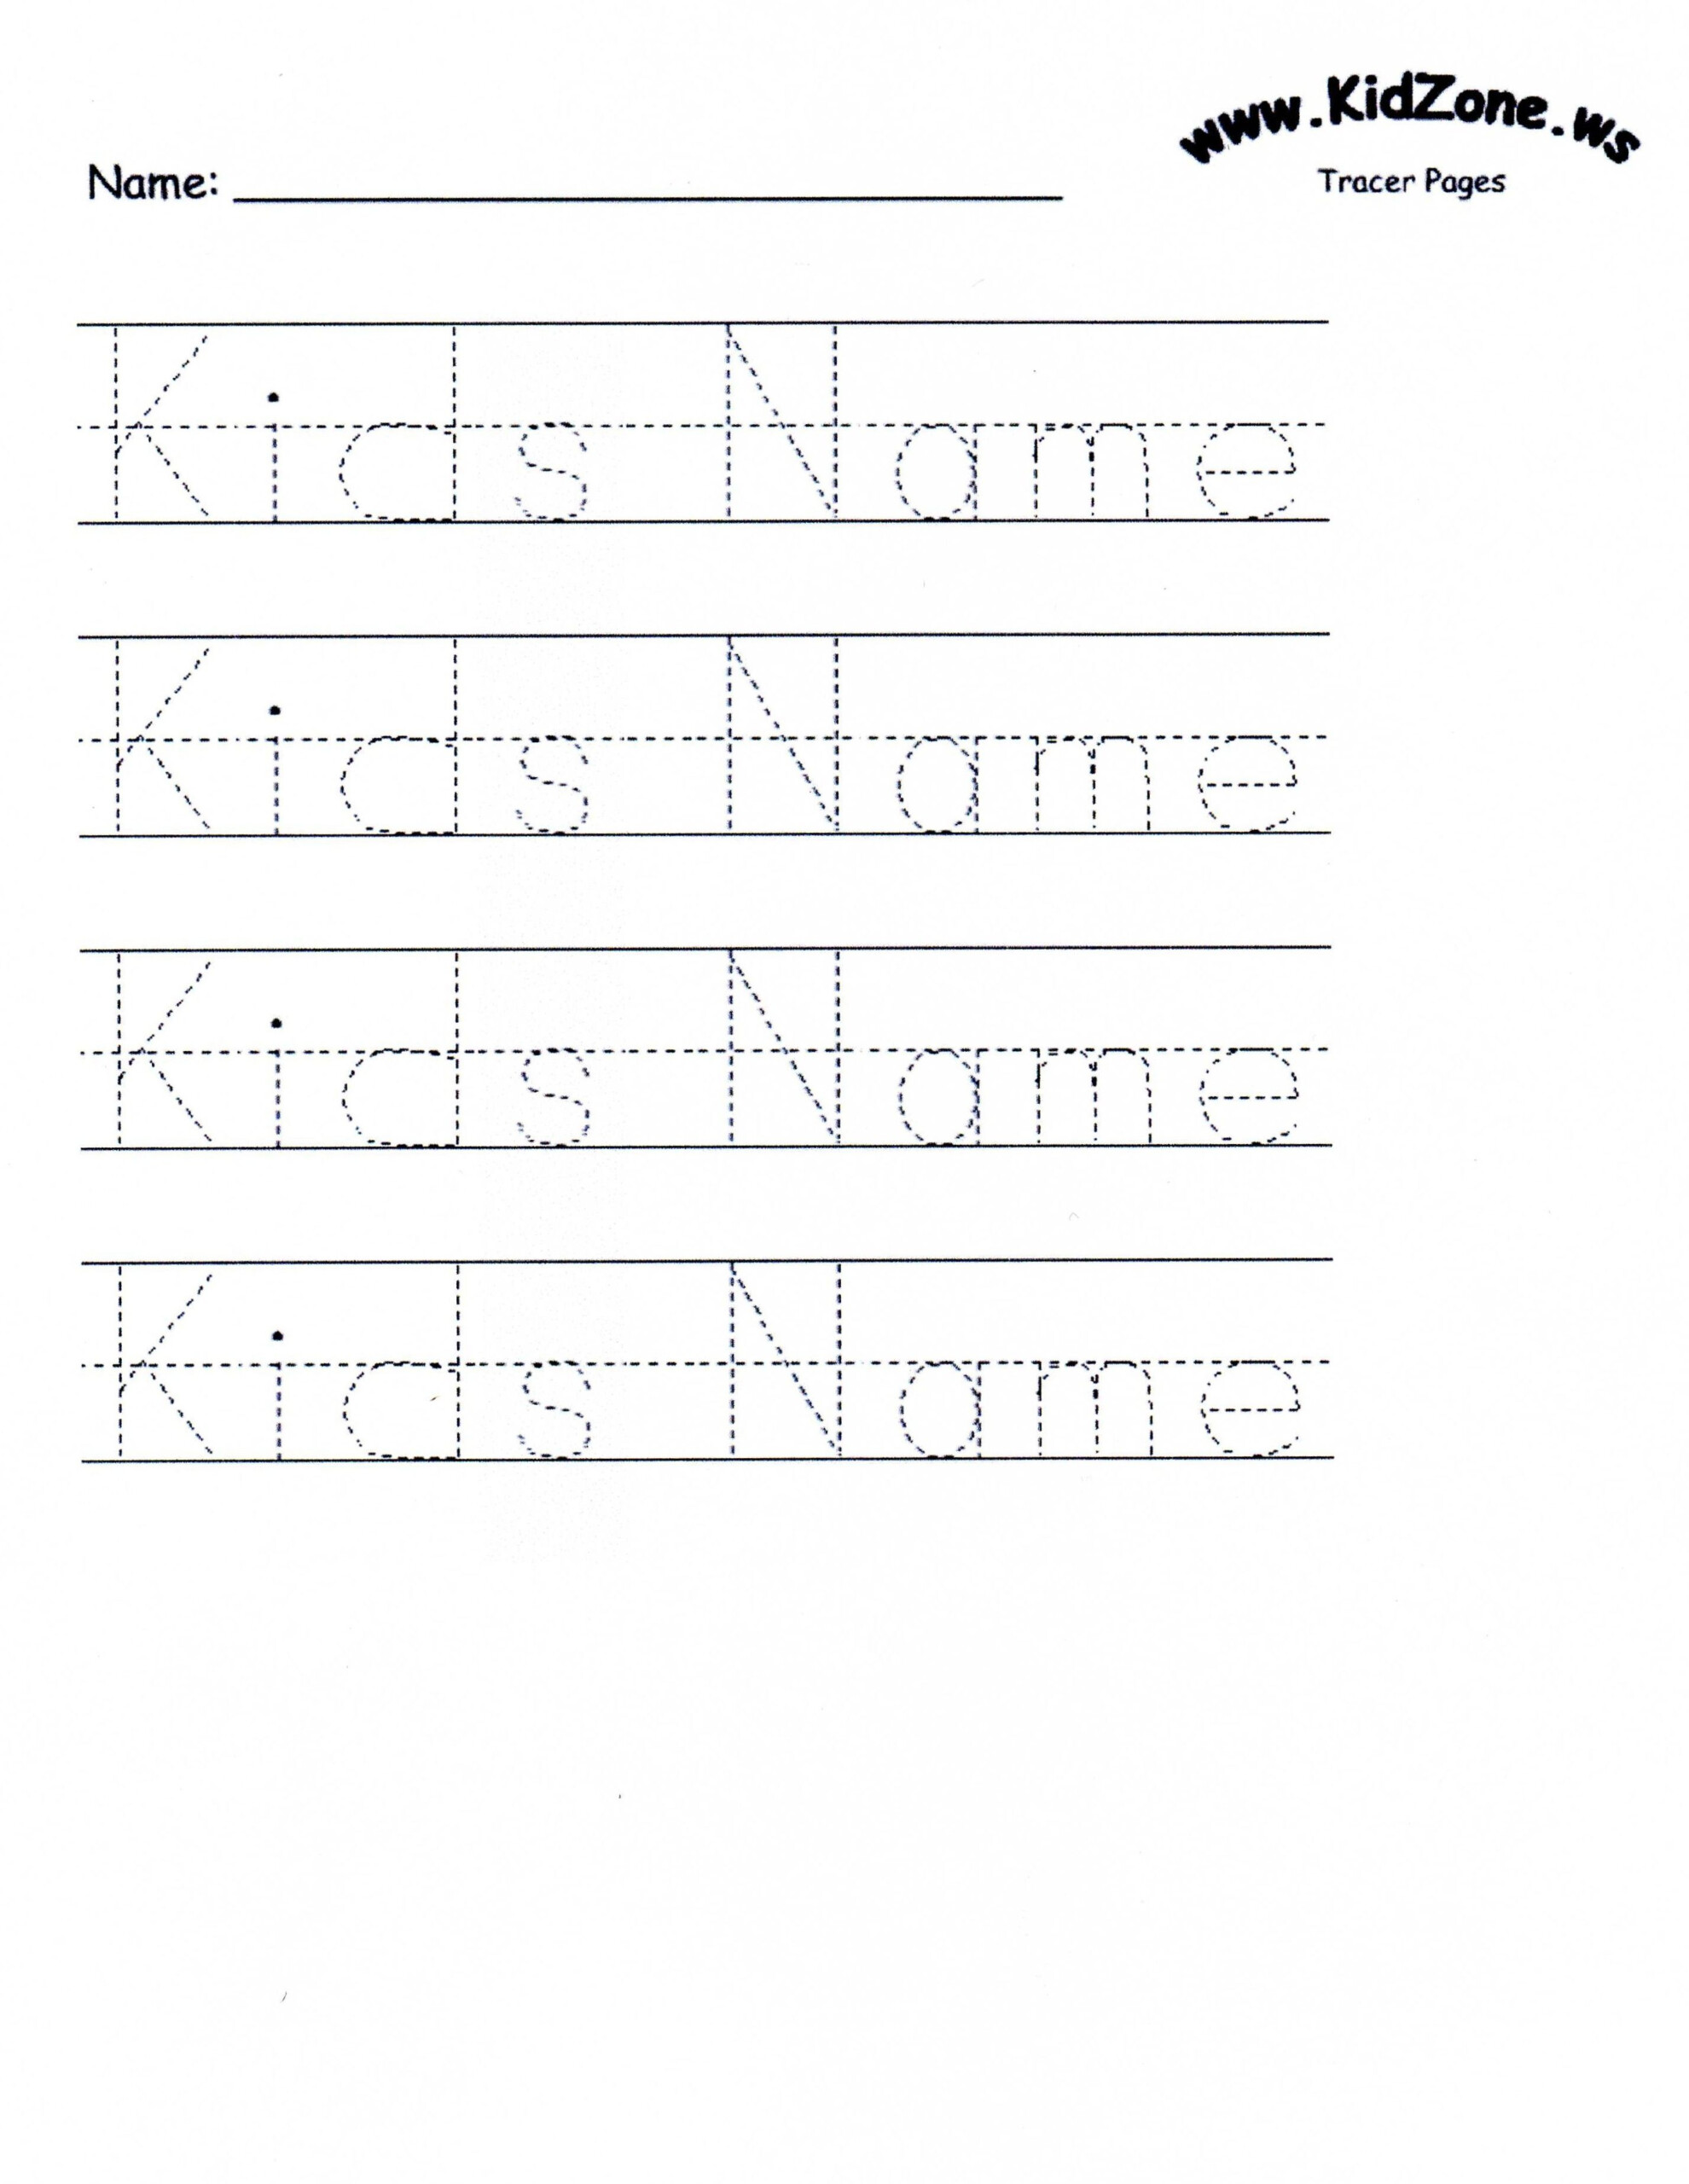 Customizable Printable Letter Pages | Preschool Names, Name with Dot Letters For Tracing Names